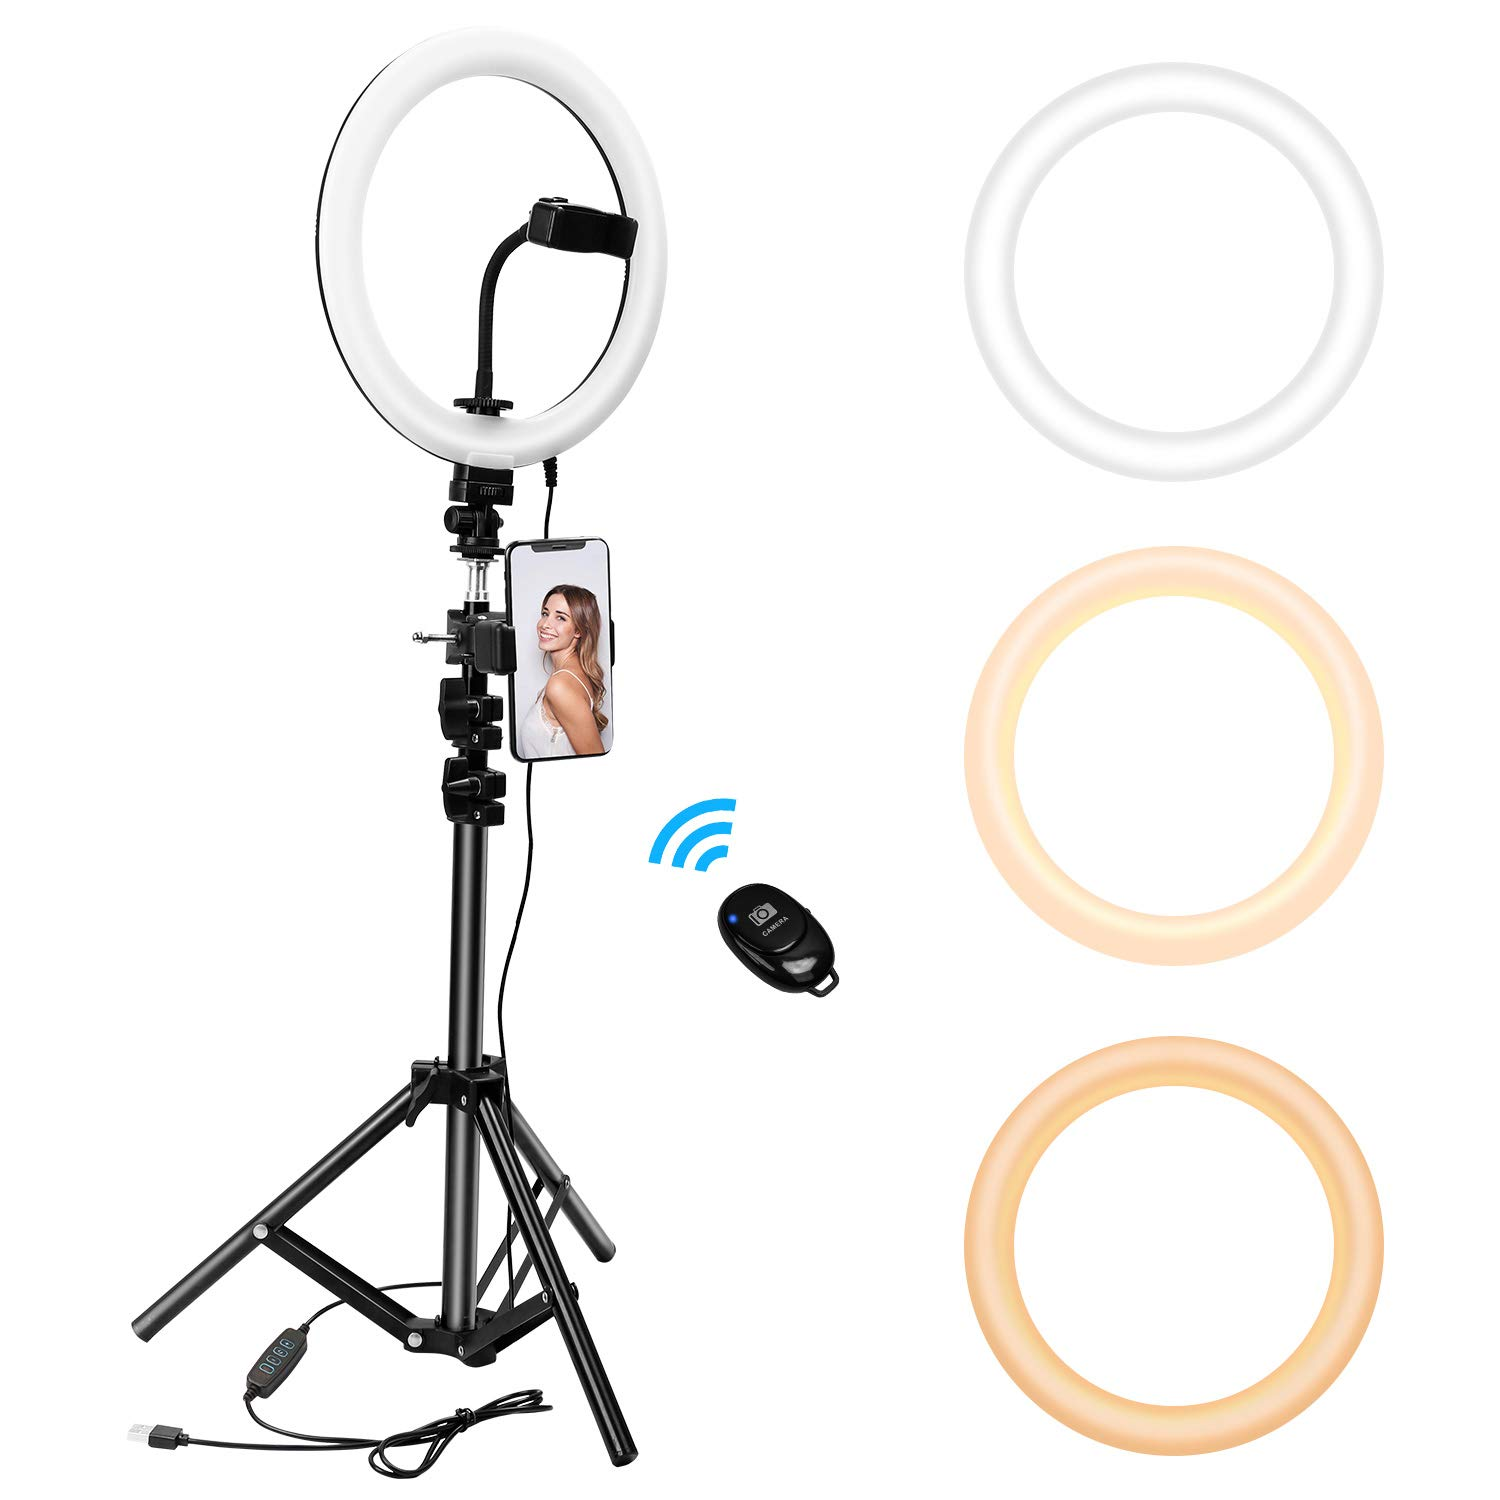 10'' Ring Light with Tripod Stand&Cell Phone Holder for Live Streaming/Makeup,Livelit Mini Desktop Camera Selfie Ringlight for YouTube Video Photography Compatible with iPhone Android(10'' Ring Light) by Livelit